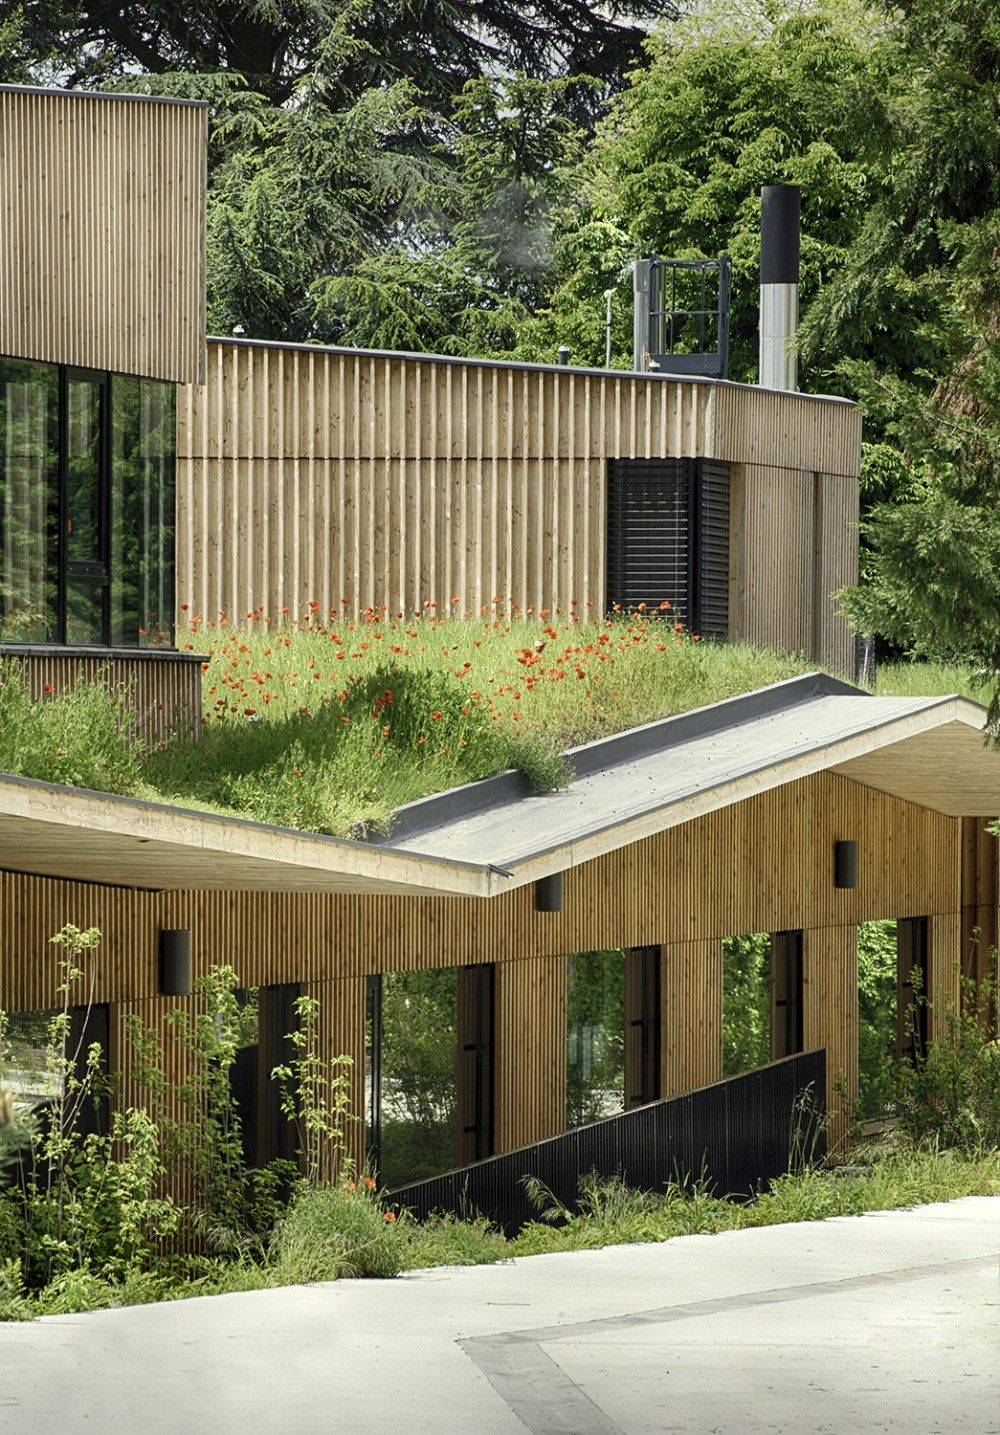 Green Roof, Vertical Board And Batten Siding | School Complex In  Rillieux La